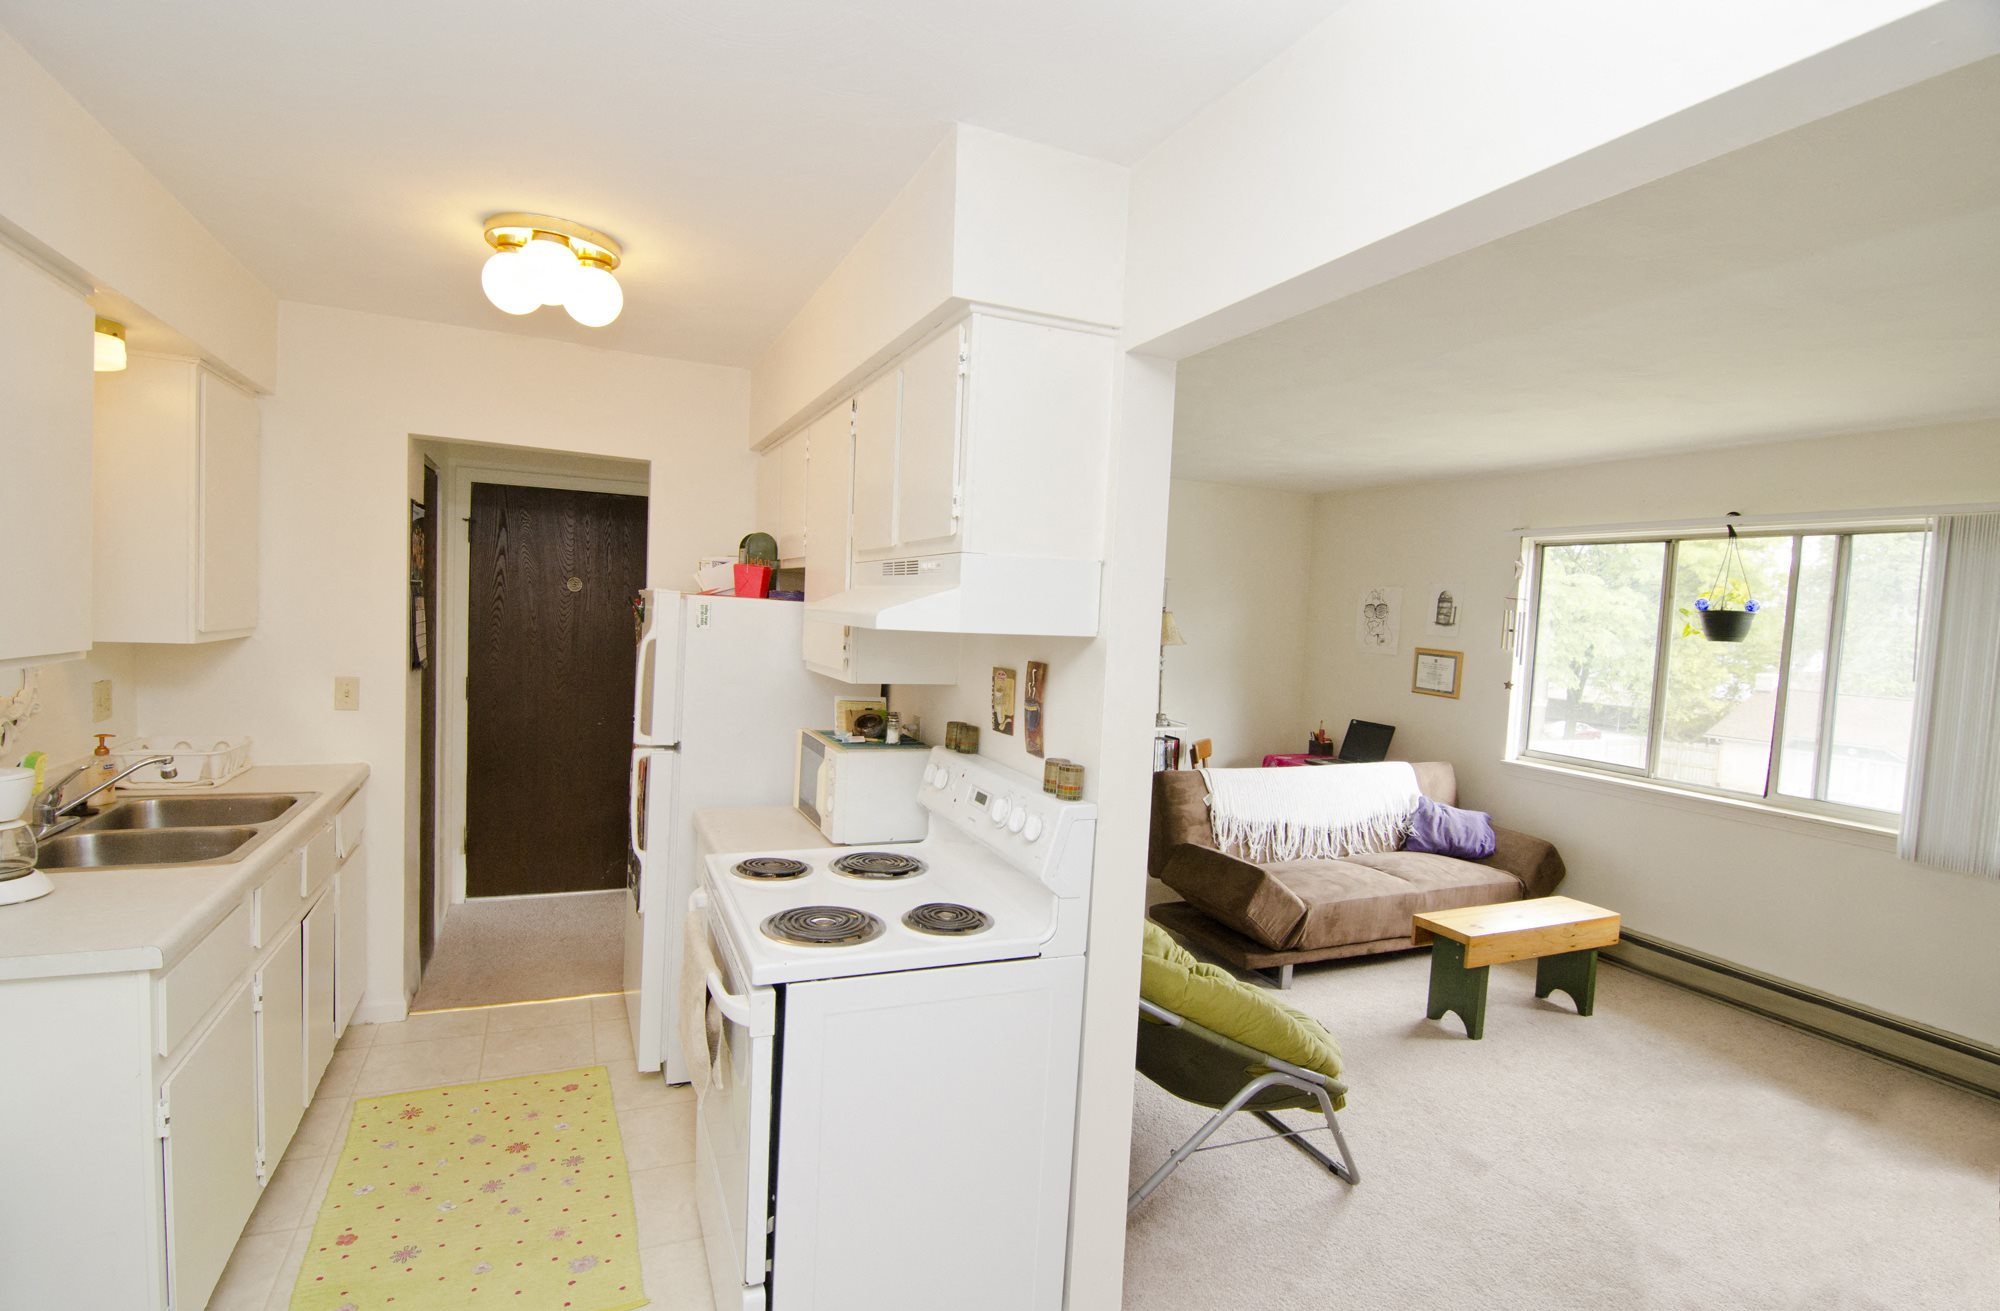 East Lansing Apartments Near Michigan State University Valley Forge